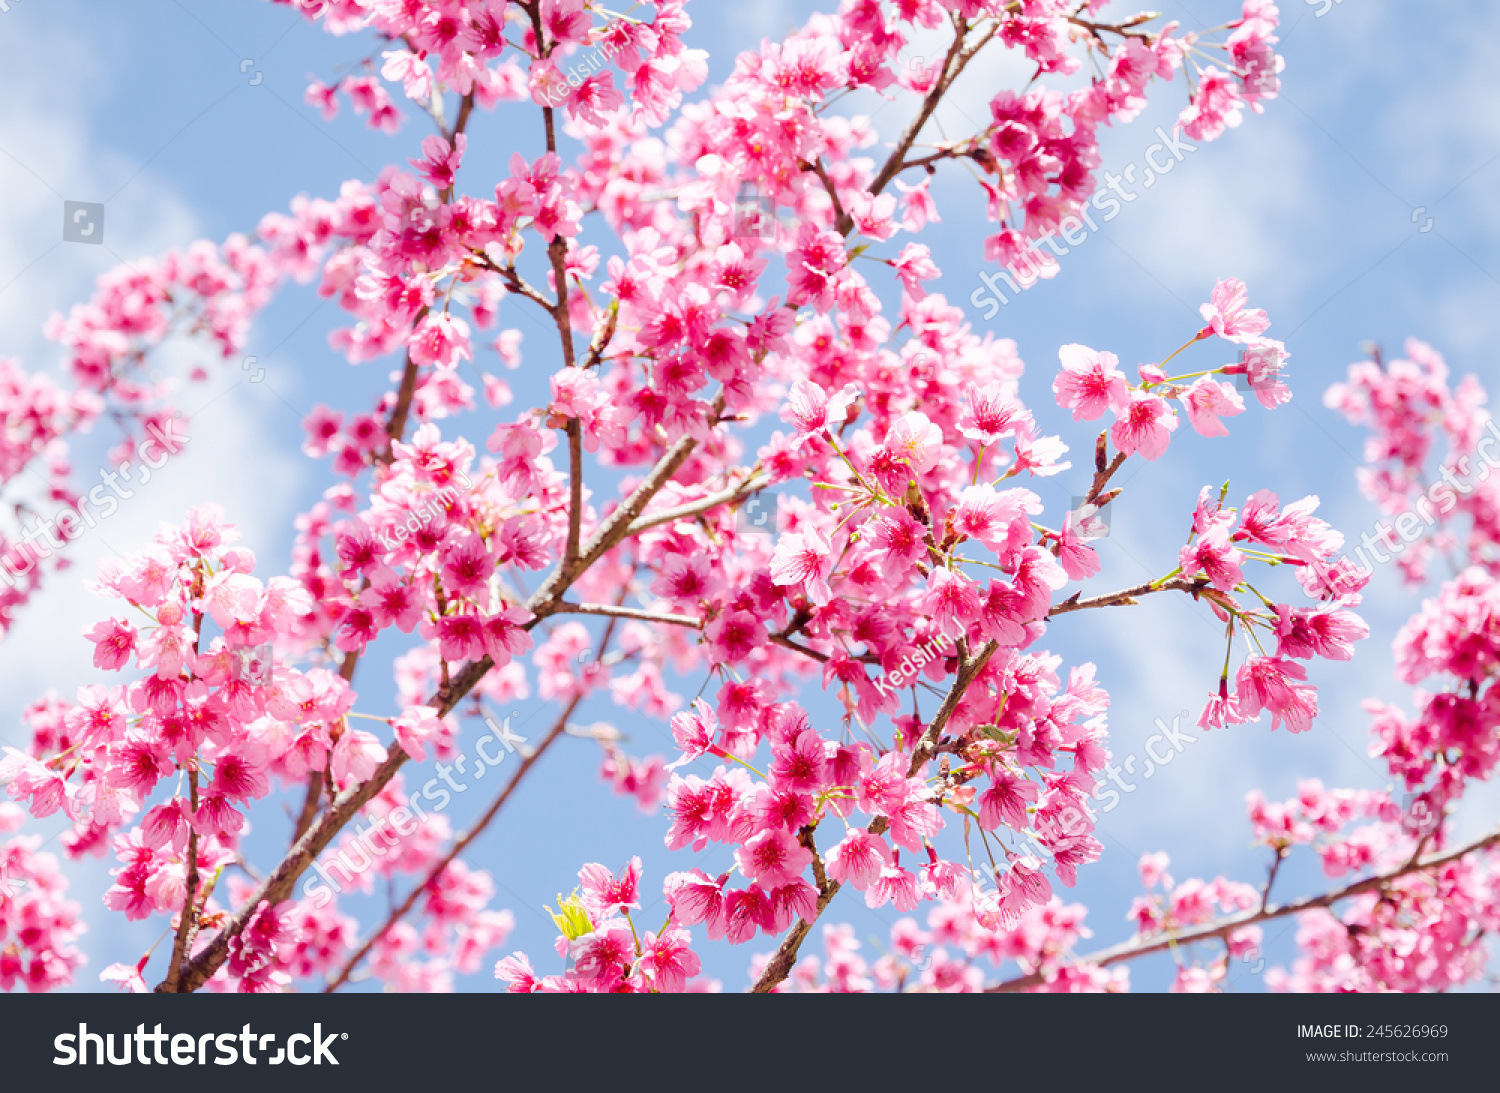 Beautiful Pink Flower Sakura Cherry Blossom Stock Photo Edit Now